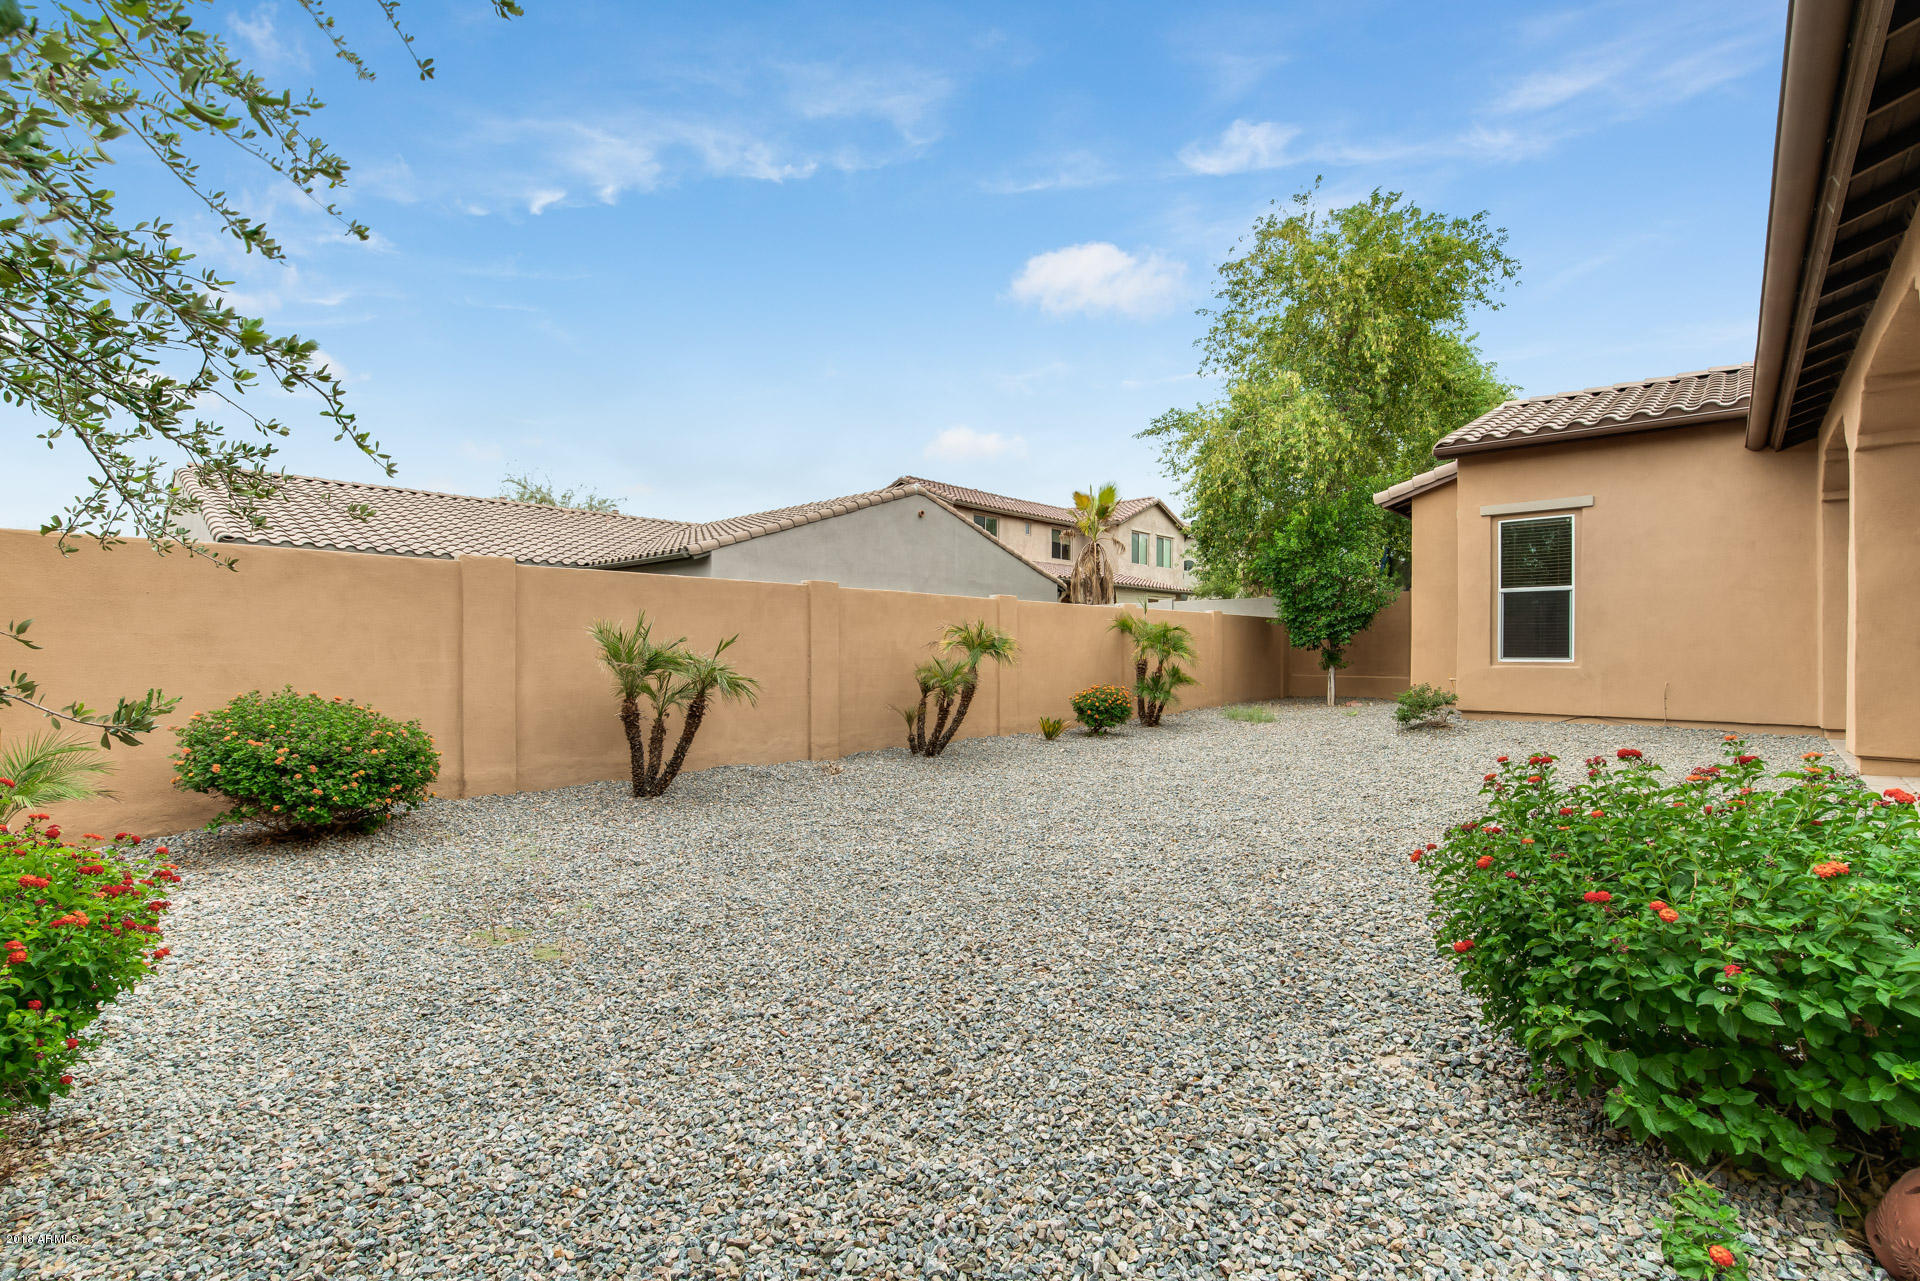 MLS 5822938 28781 N 68TH Drive, Peoria, AZ 85383 Peoria AZ Sonoran Mountain Ranch